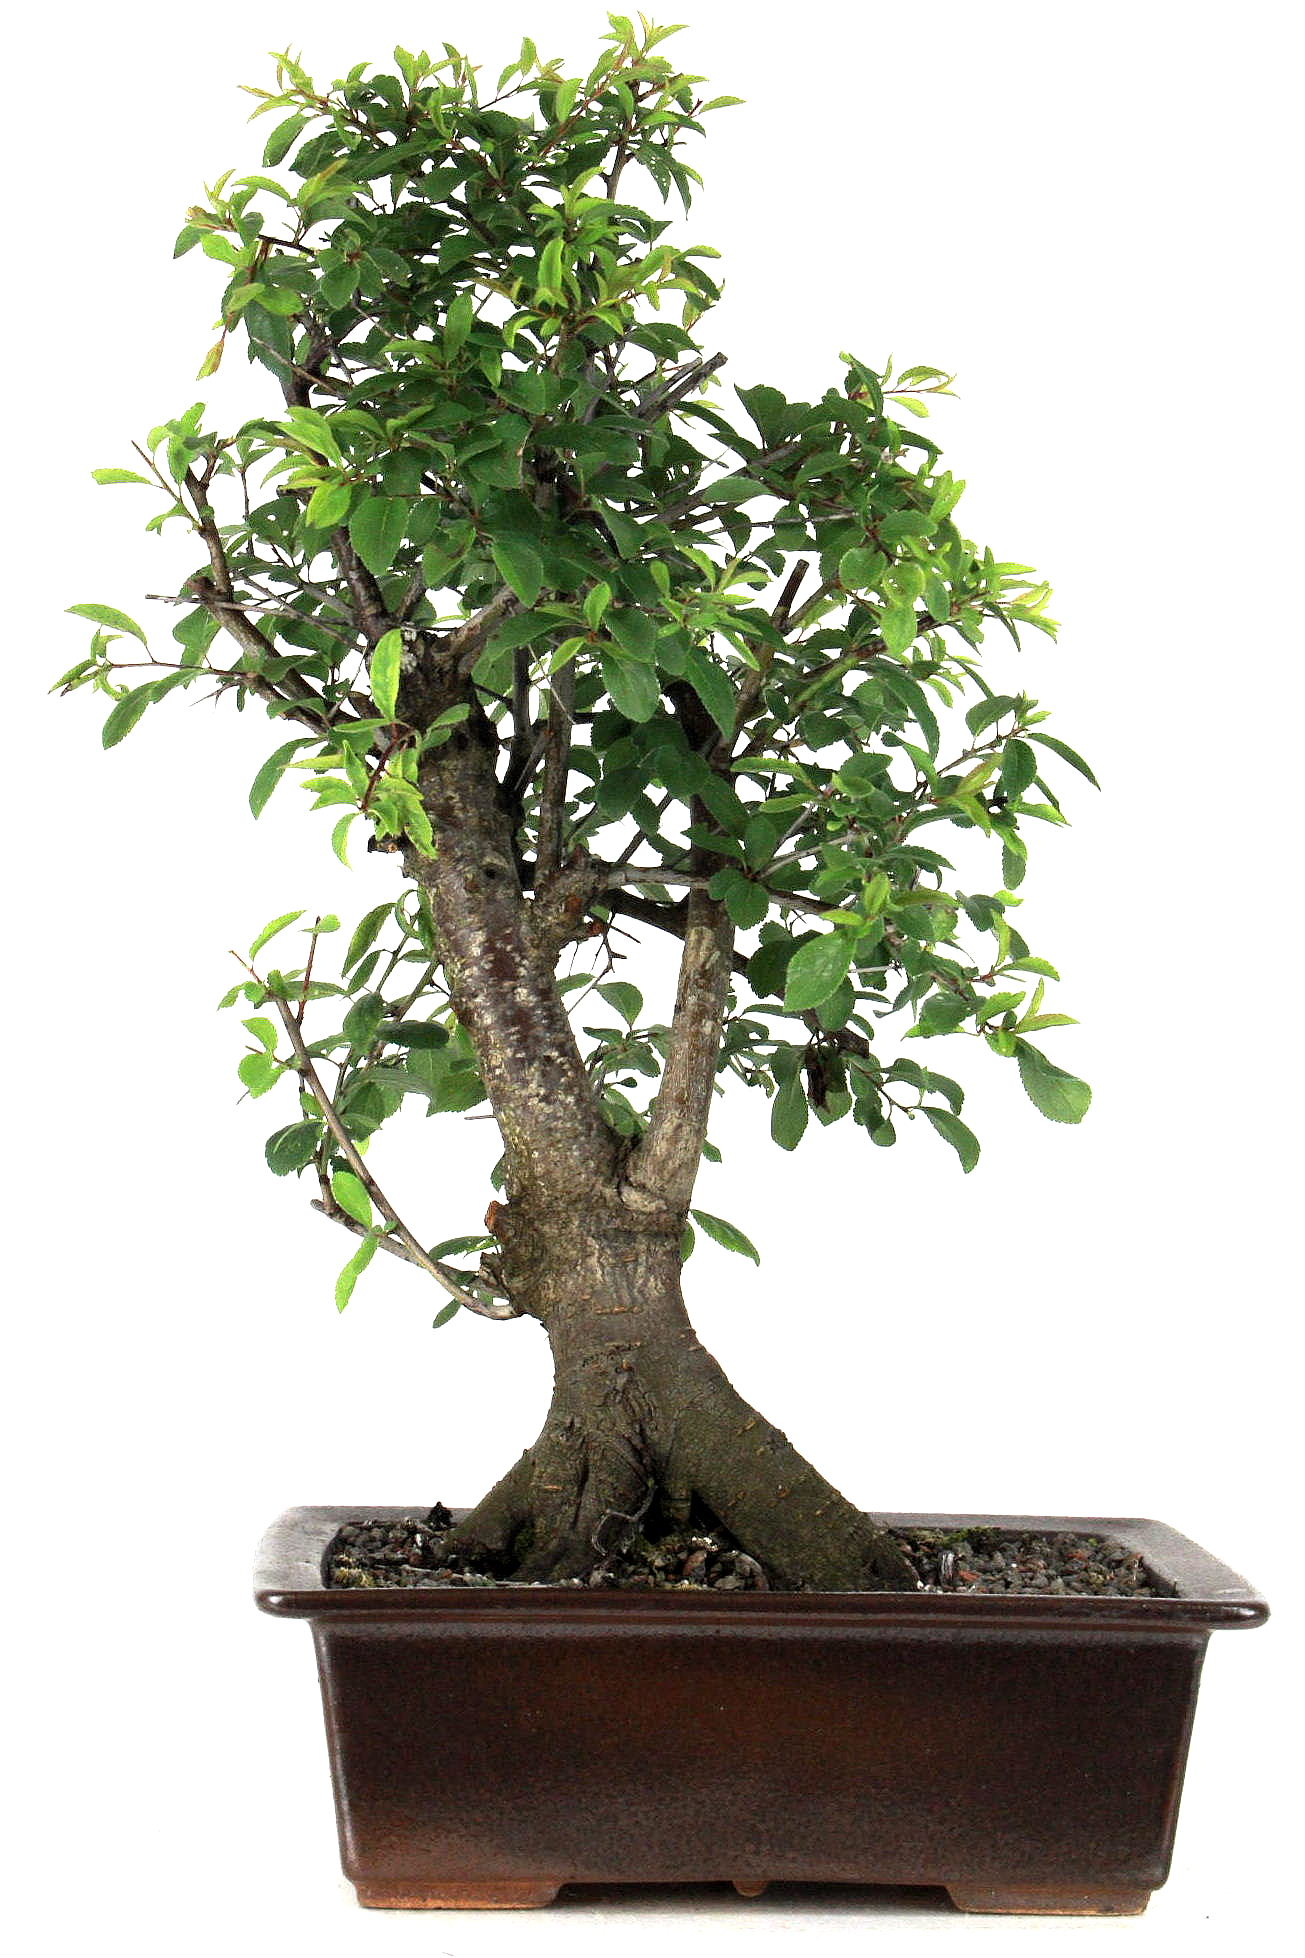 schlehe prunus spinosa 45 cm 238 bei oyaki bonsai kaufen. Black Bedroom Furniture Sets. Home Design Ideas